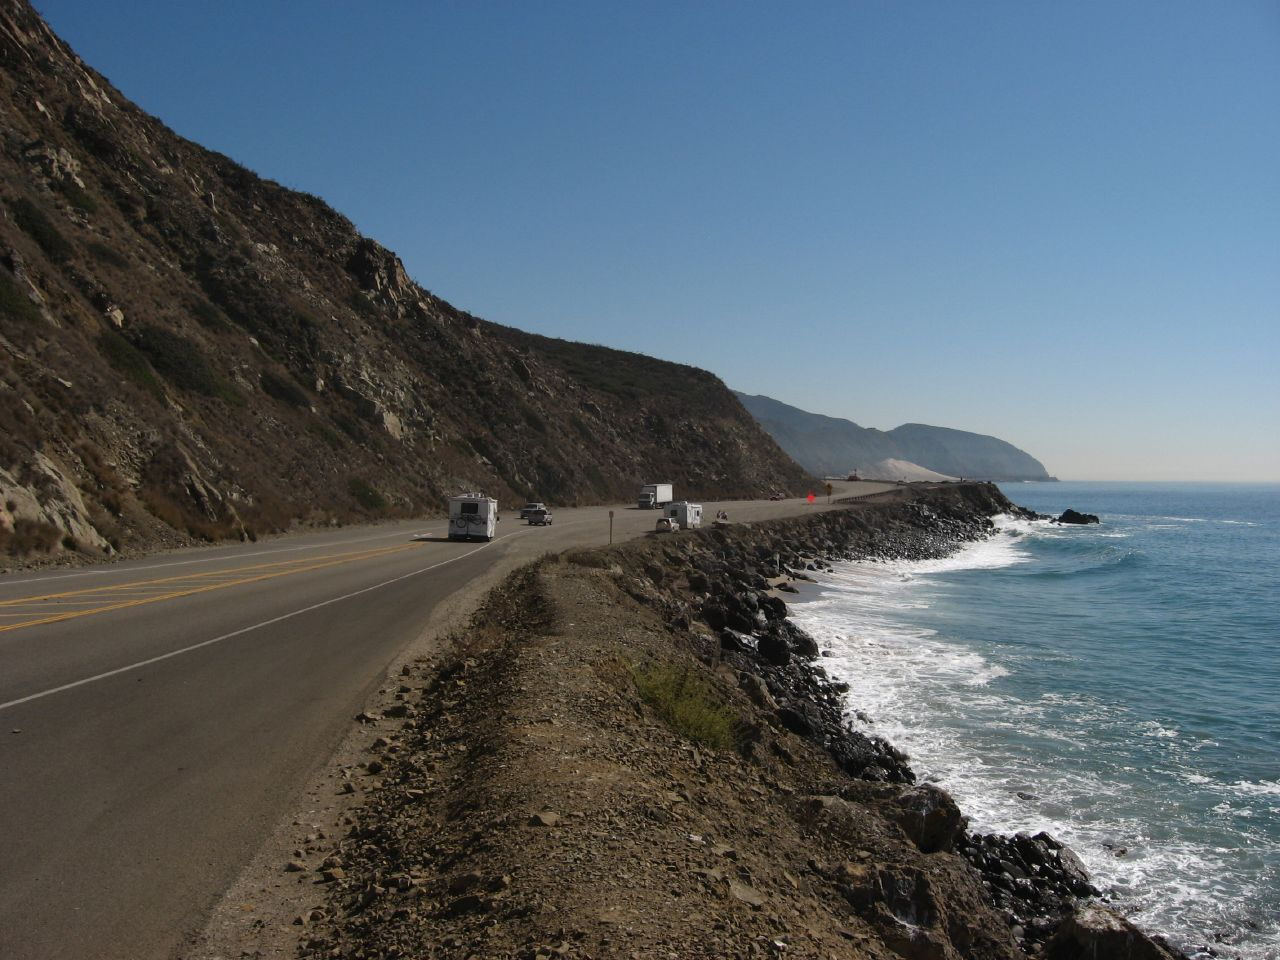 The gorgeous Pacific Coast Highway is an amazing place to visit in LA